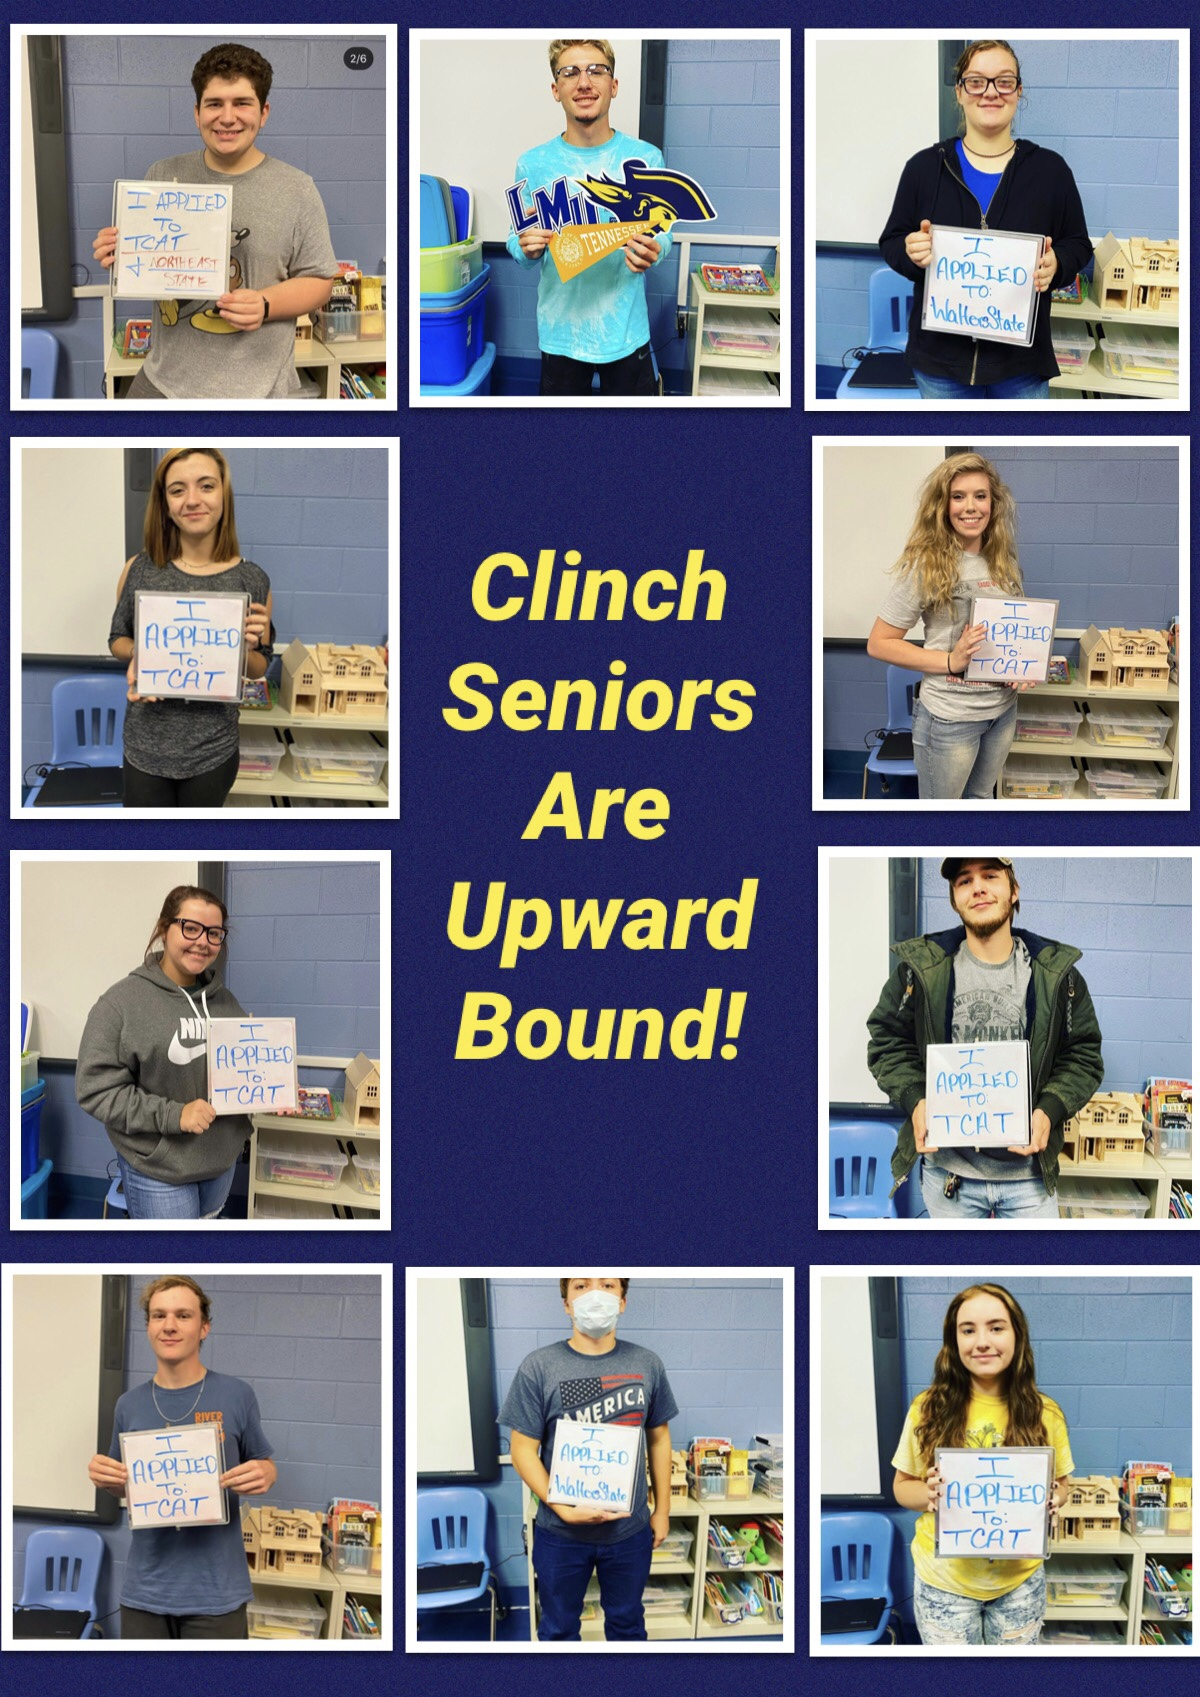 Clinch seniors are upward bound